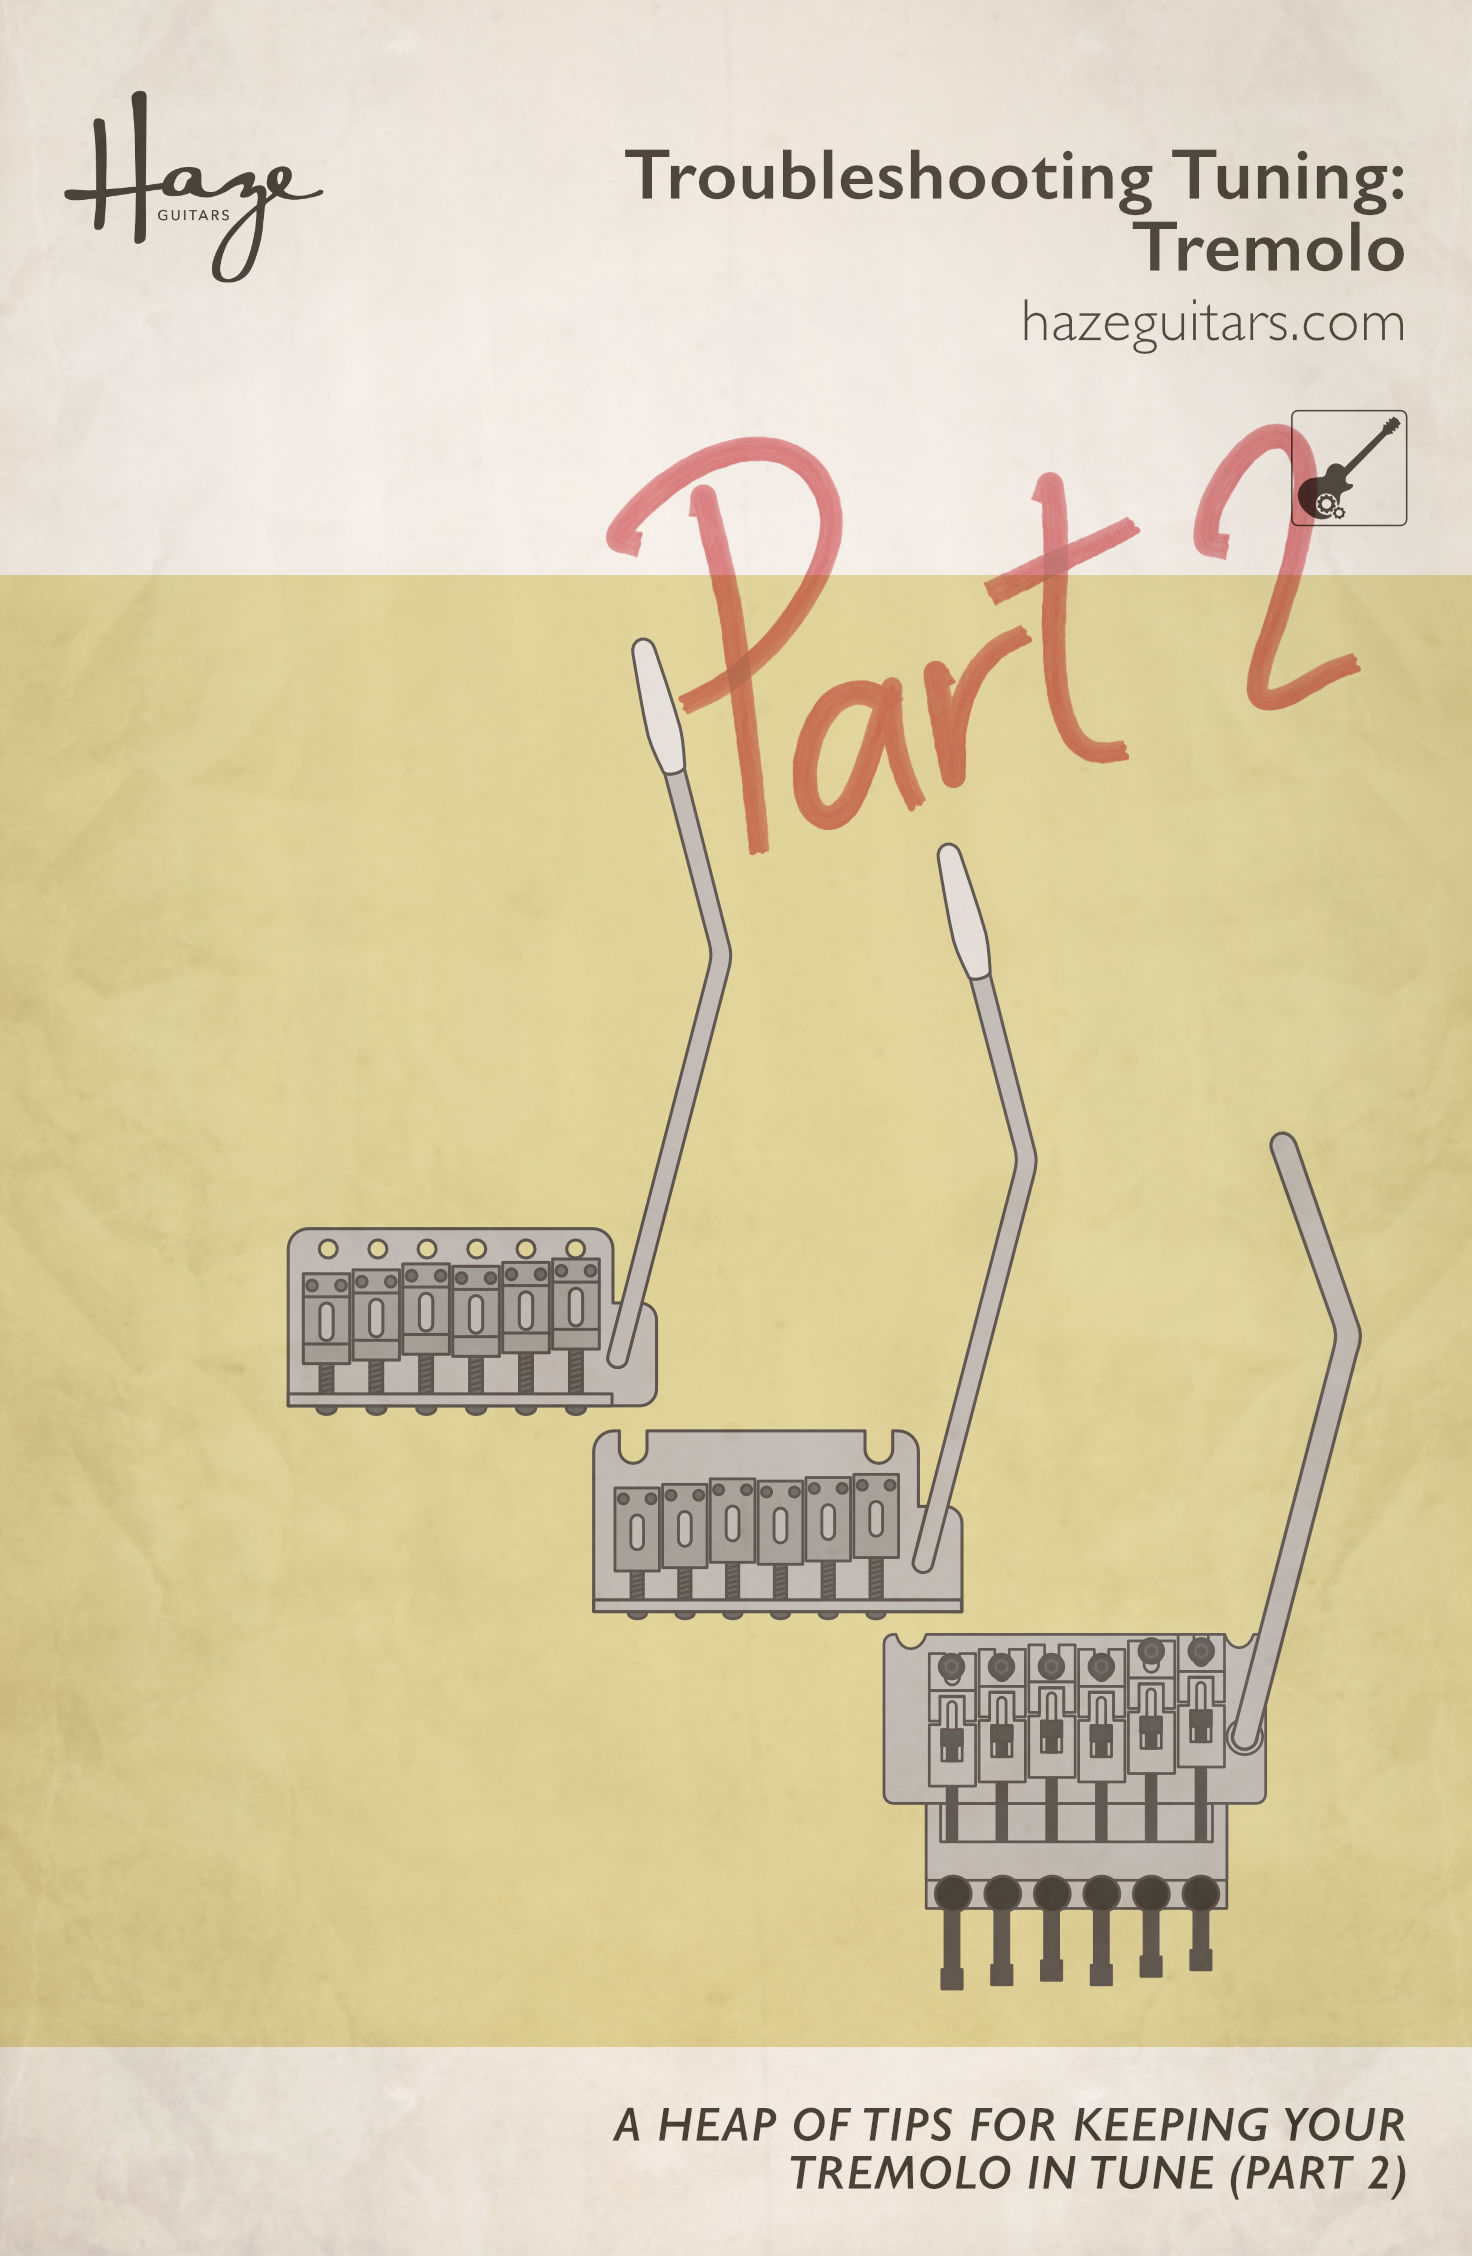 Part two of our tremolo tuning tips.